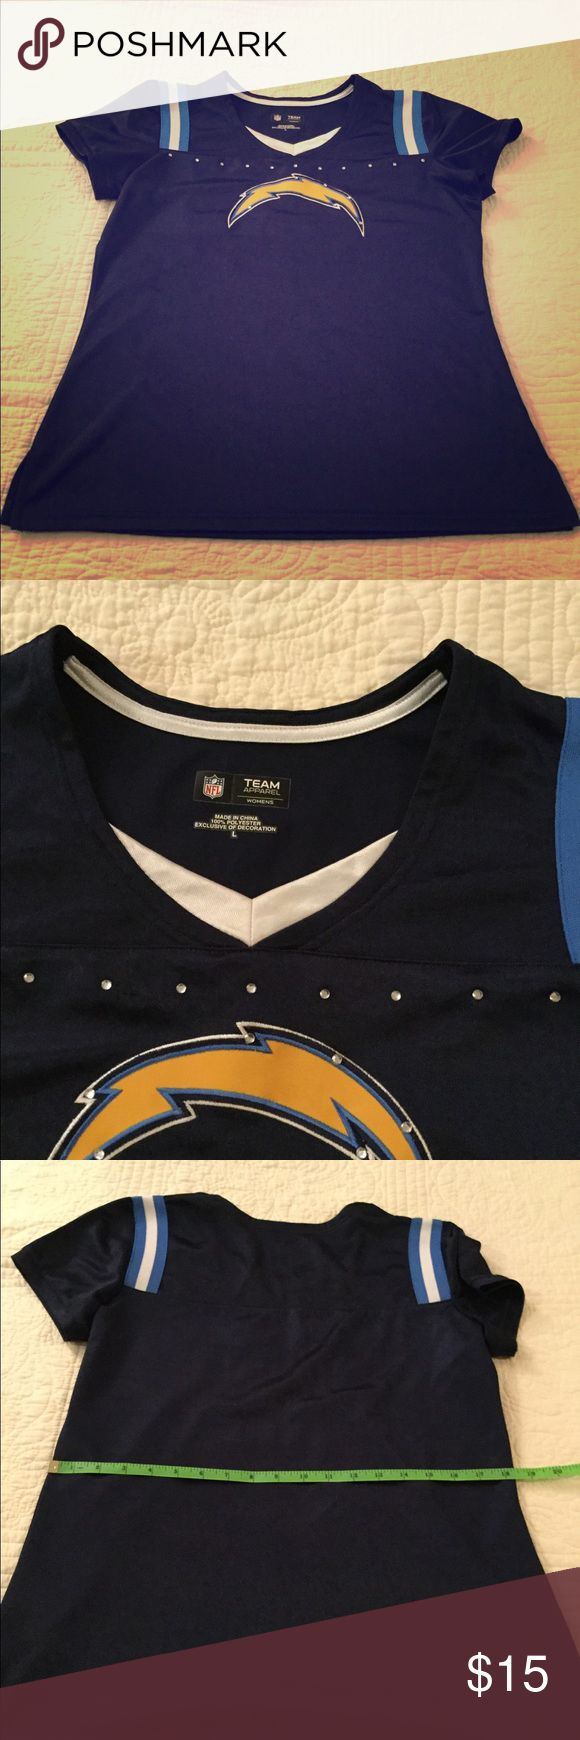 NFL Los Angeles Chargers 'Jersey' (L) Just in time for FOOTBALL!!🏈 NFL Team Apparel Los Angeles Chargers 'Jersey' What's nice about this top: there is not a players name on the back which will not date this top:) This top is pre loved as I am a Chargers fan... now you can have this gem! nfl team apparel Tops